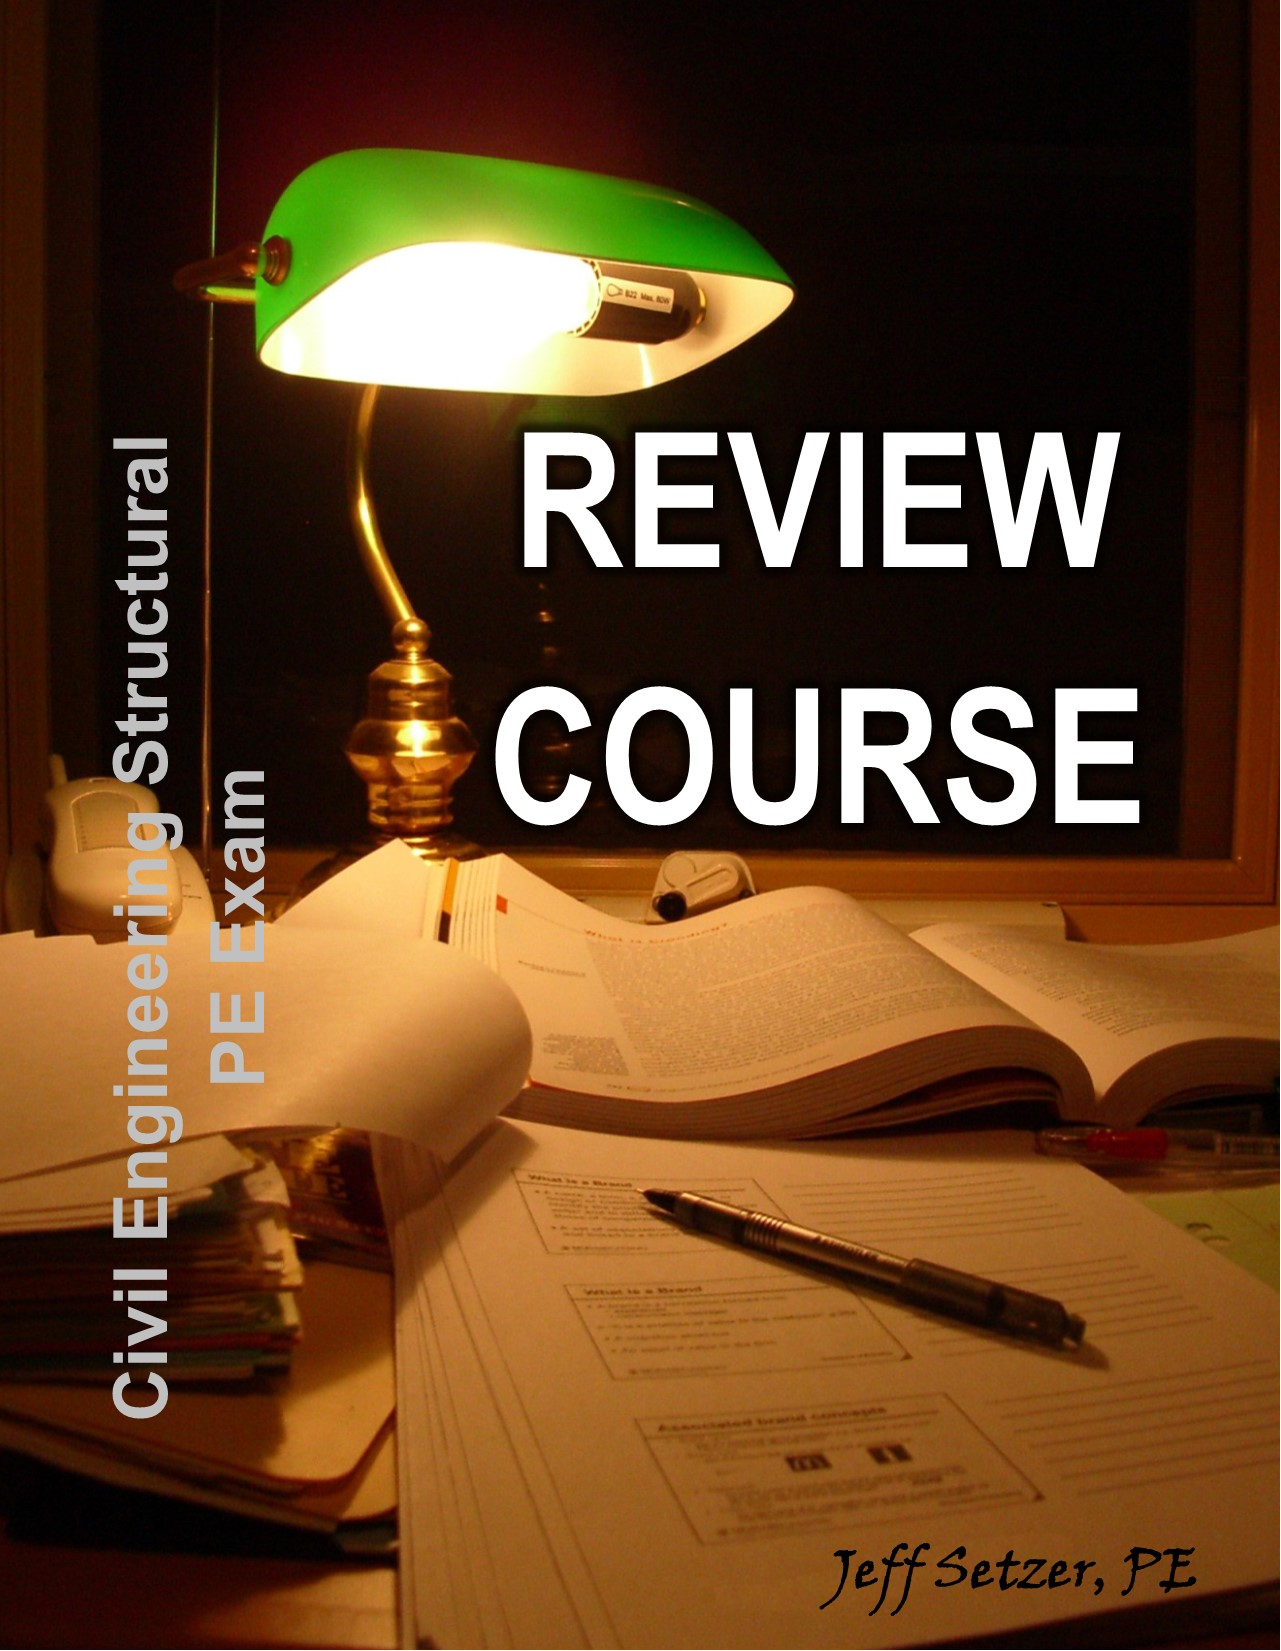 Civil Engineering Structural PE Exam Review Course